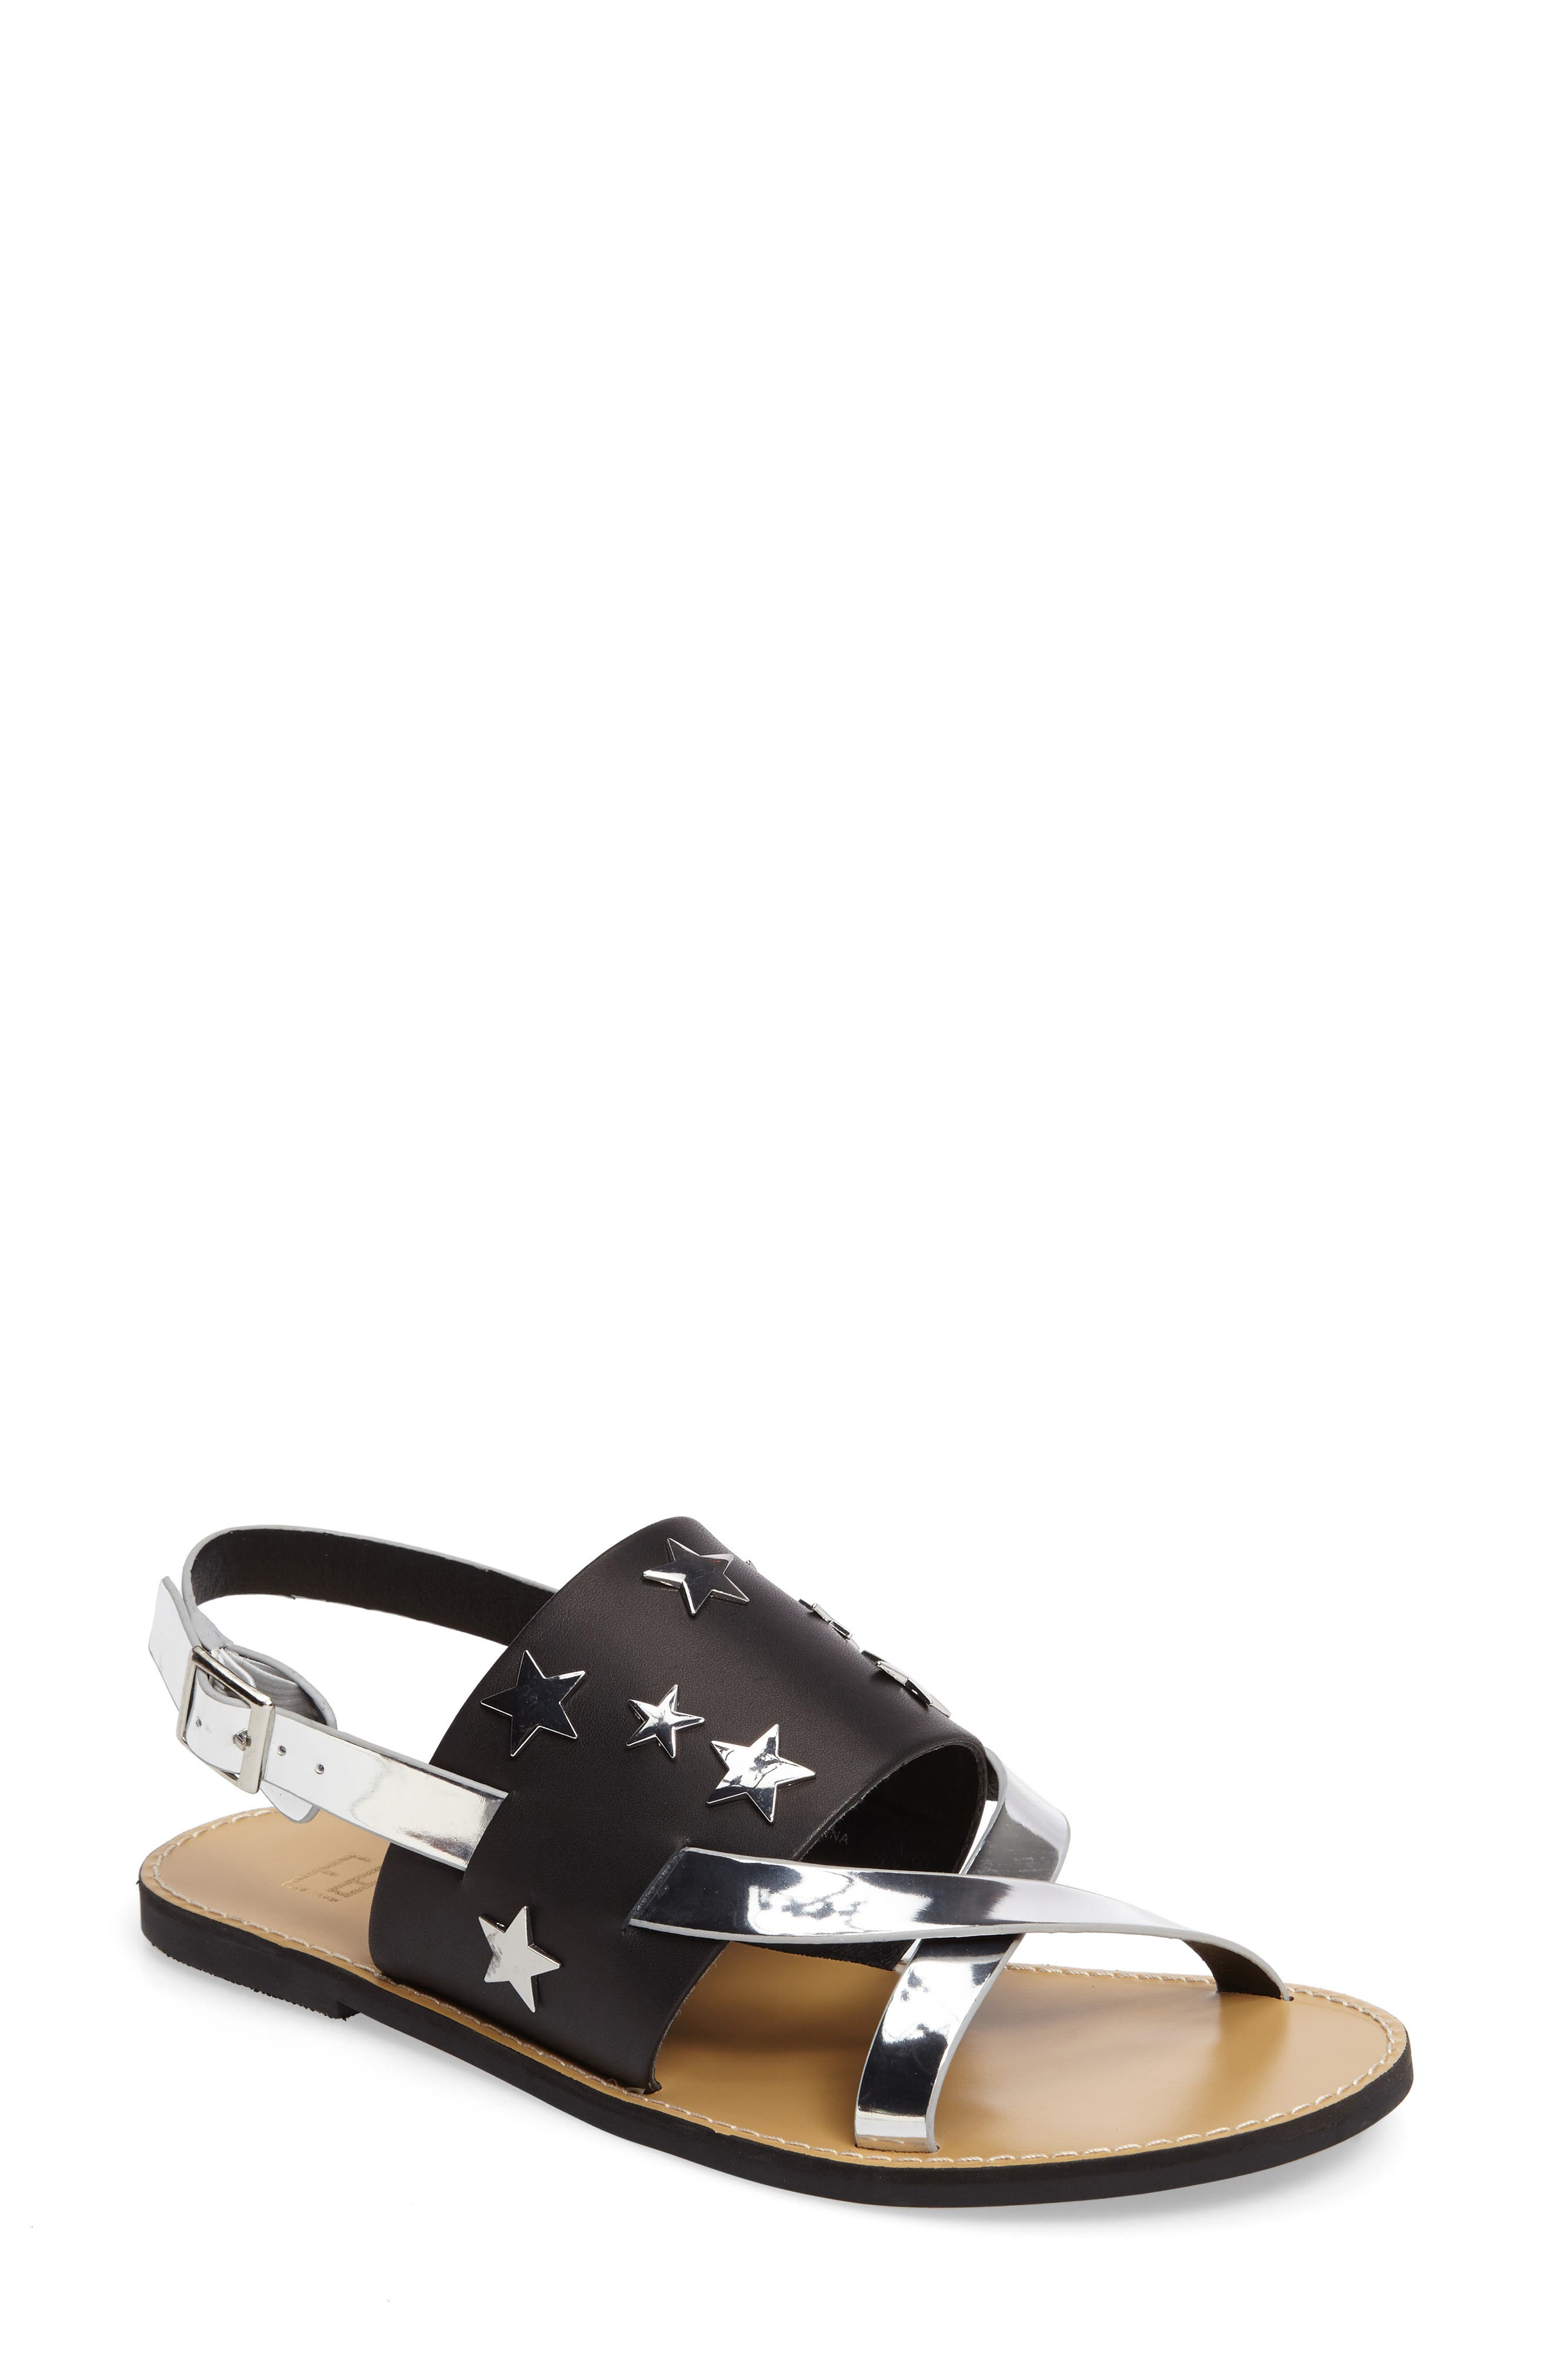 E8 by Miista Salome Star Sandal (Women)